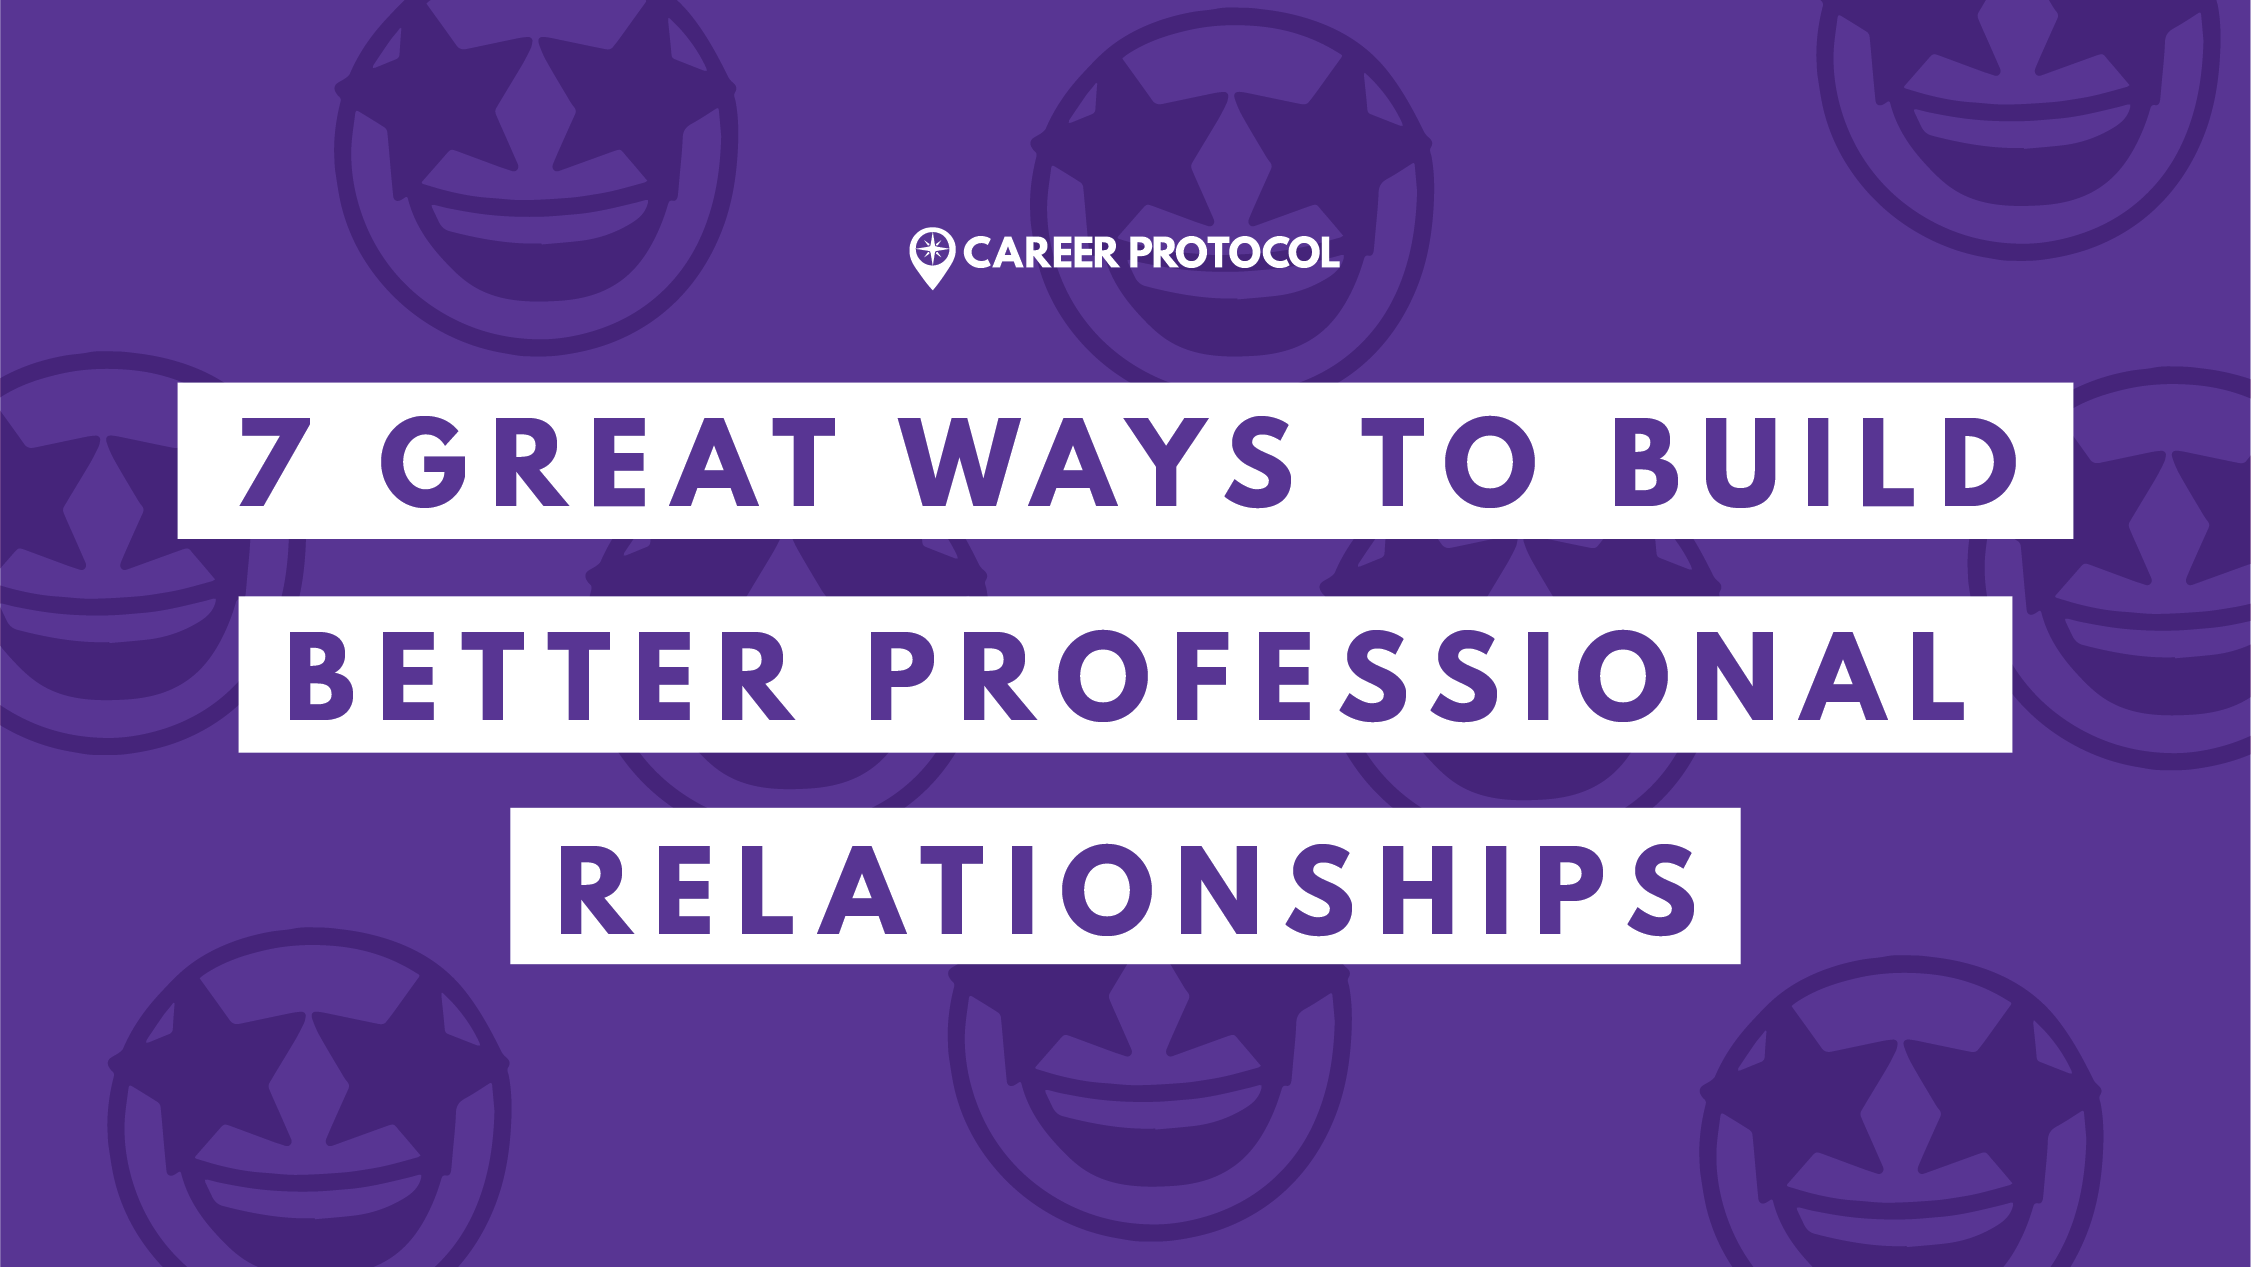 7 Great Ways to Build Better Professional Relationships